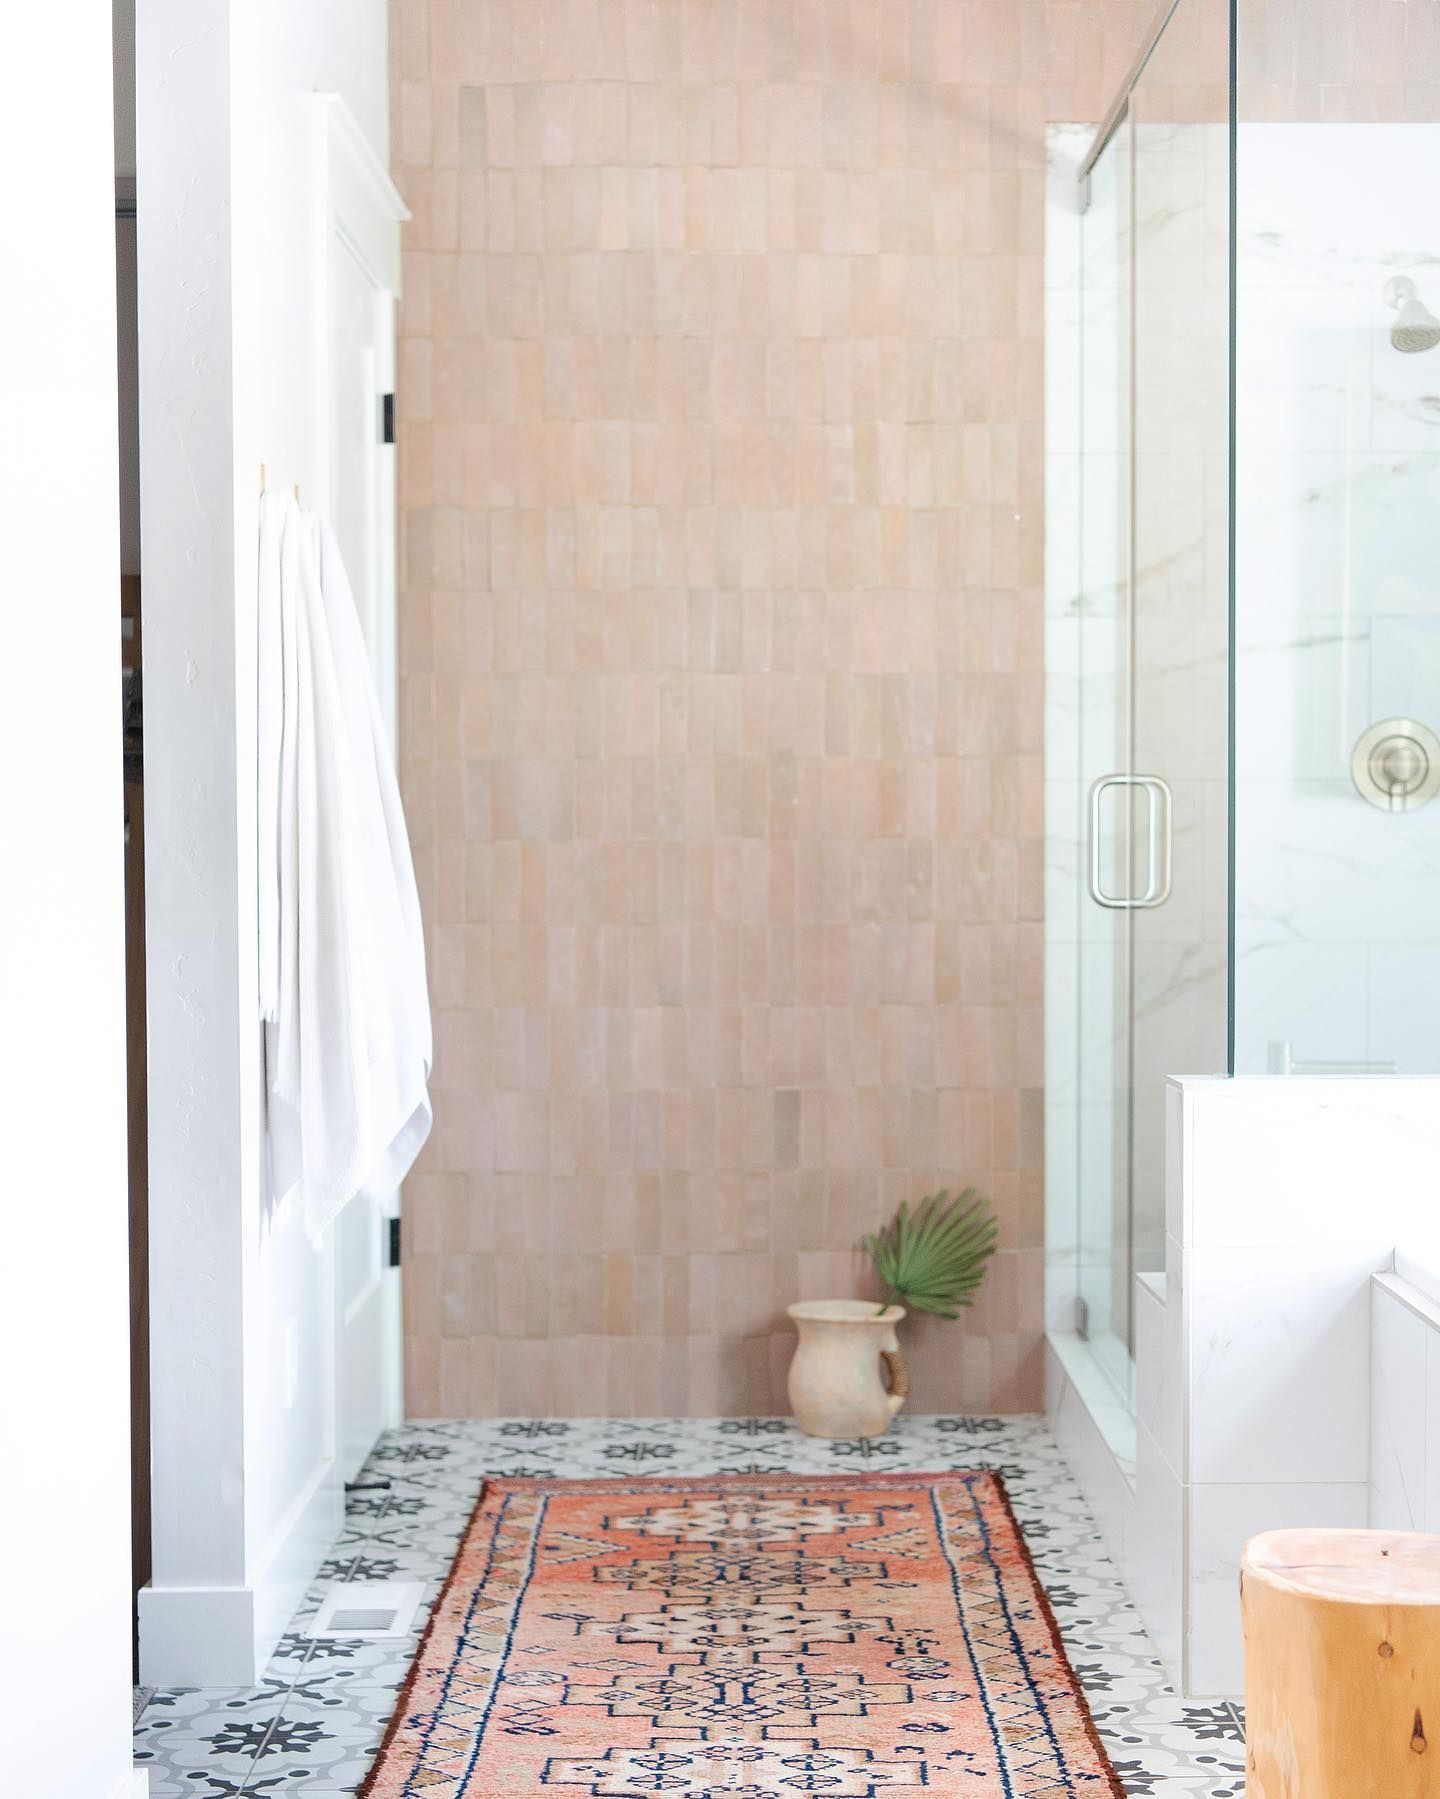 Stunning bathroom by loomandkiln featuring our 2x6 Blush